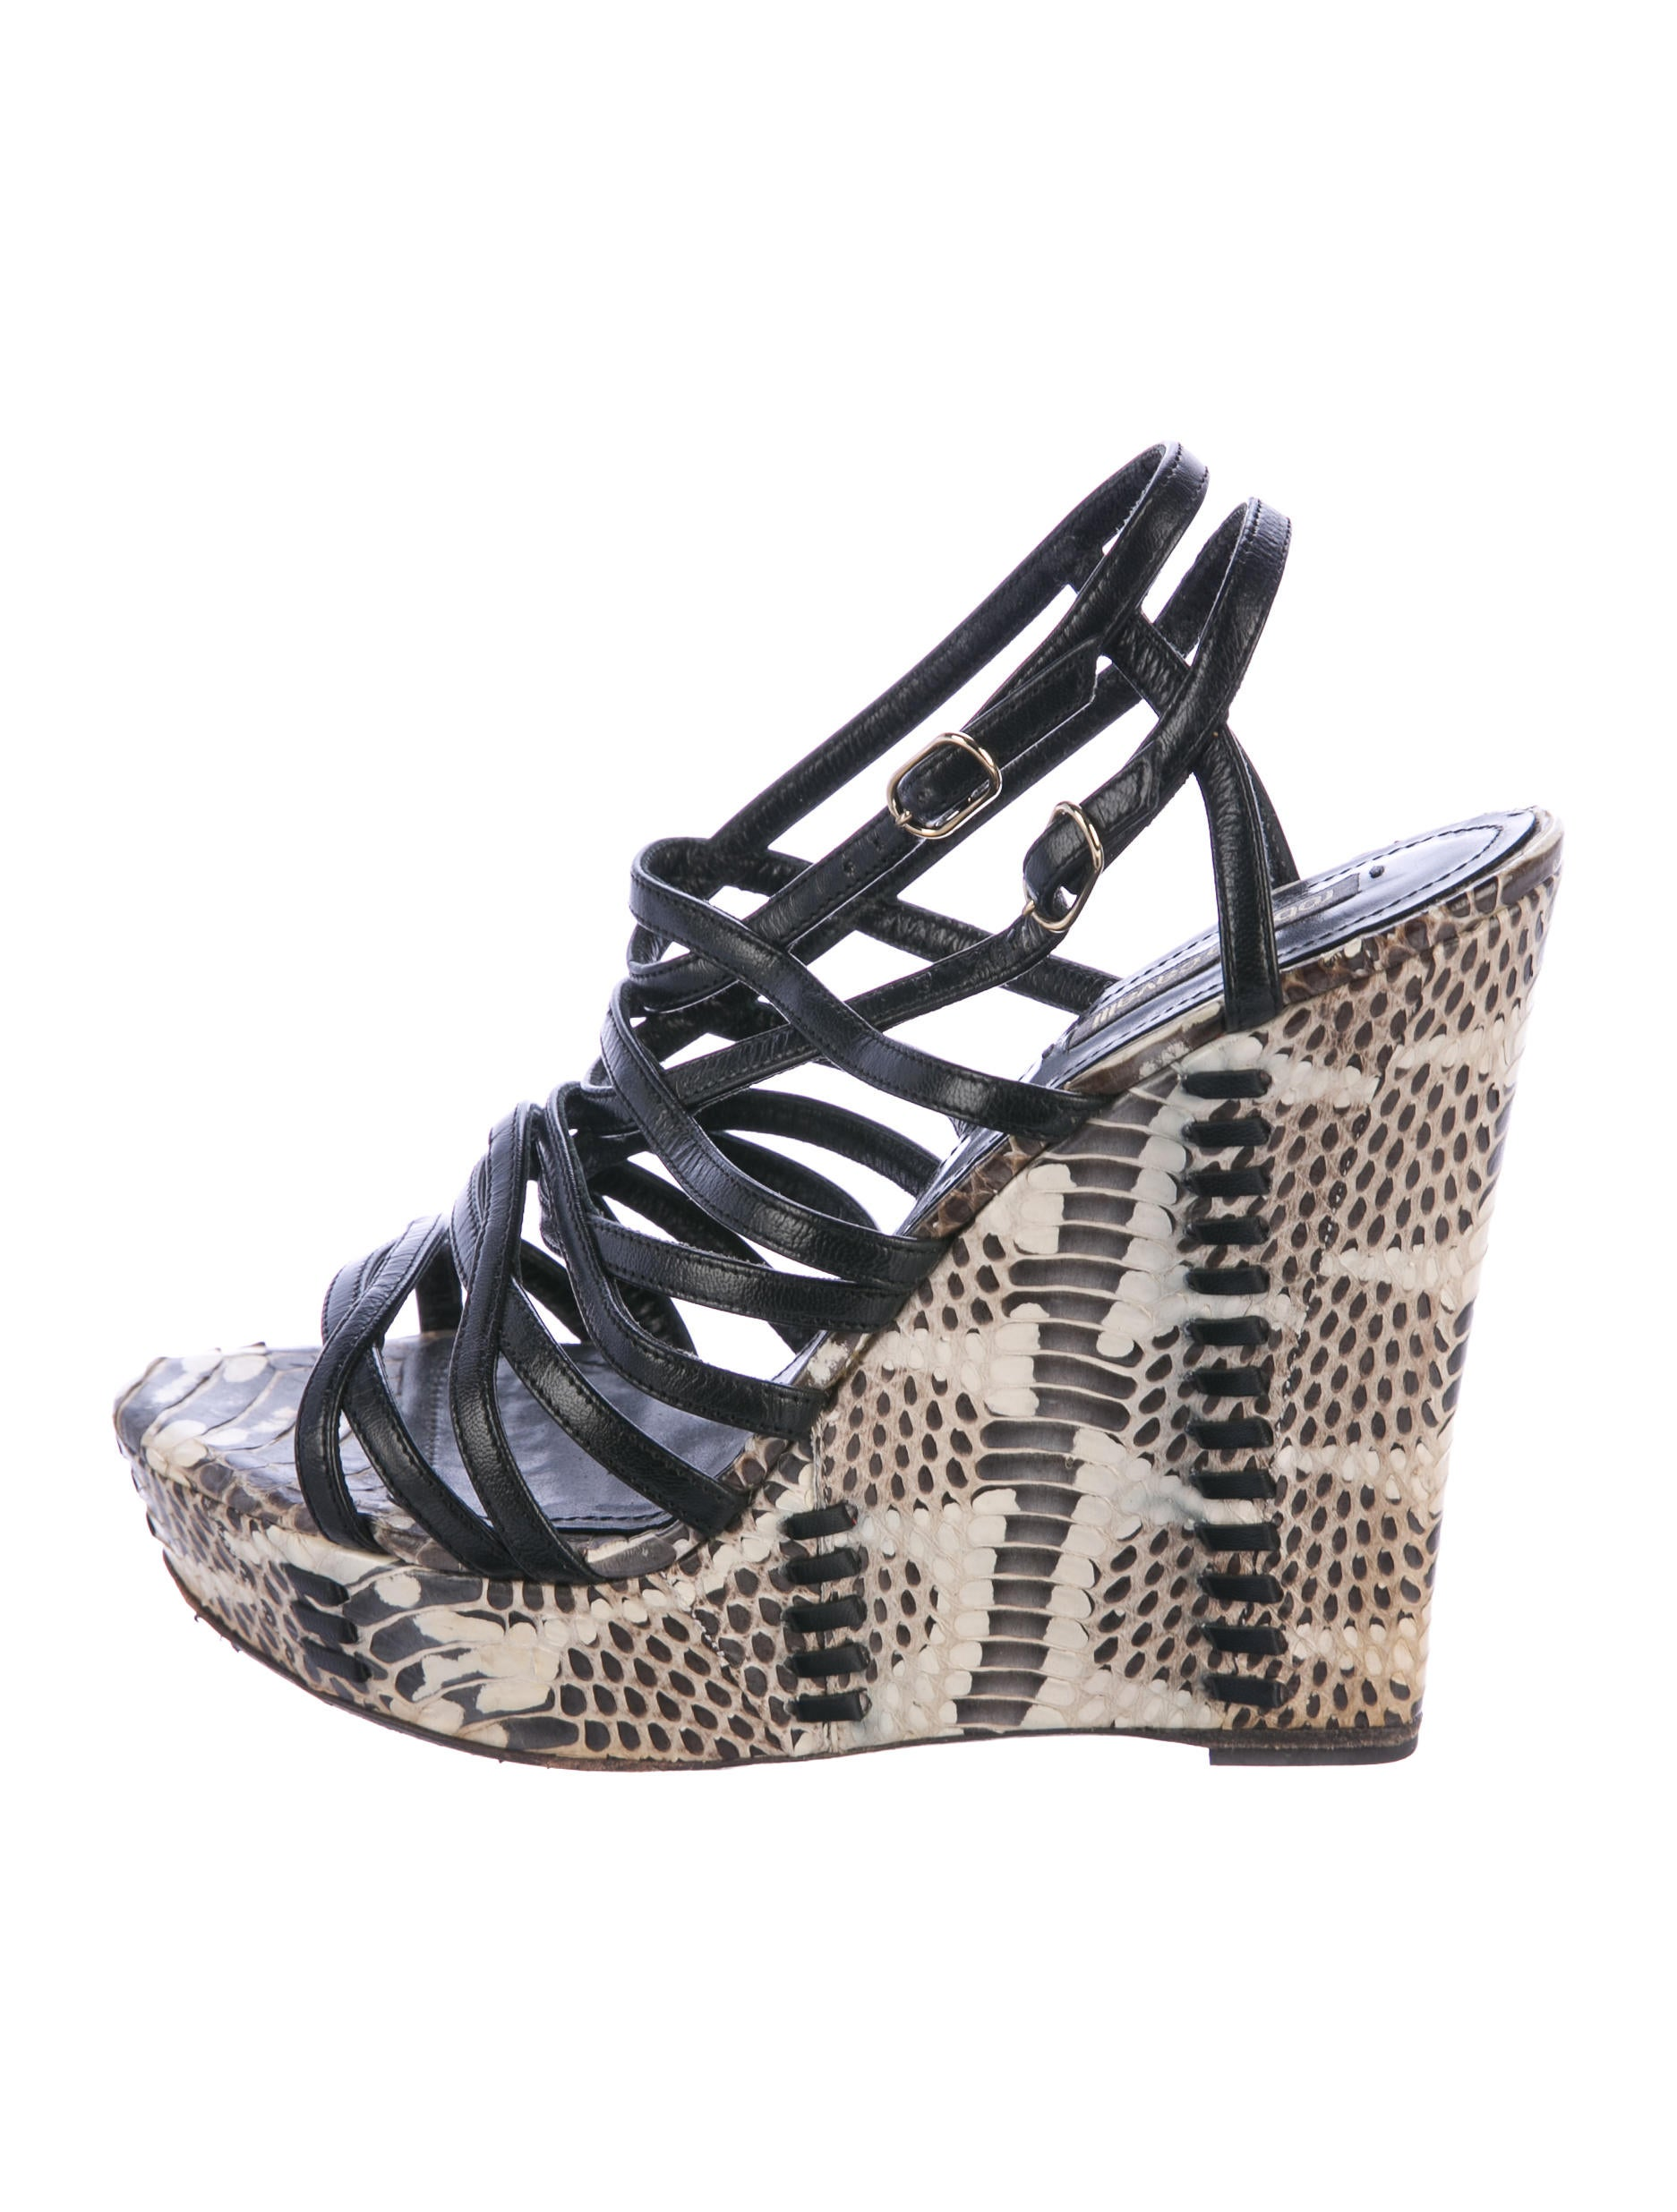 cheap sale high quality Roberto Cavalli Snakeskin Wedge Sandals pick a best online cost cheap online countdown package for sale GYhj4mE2